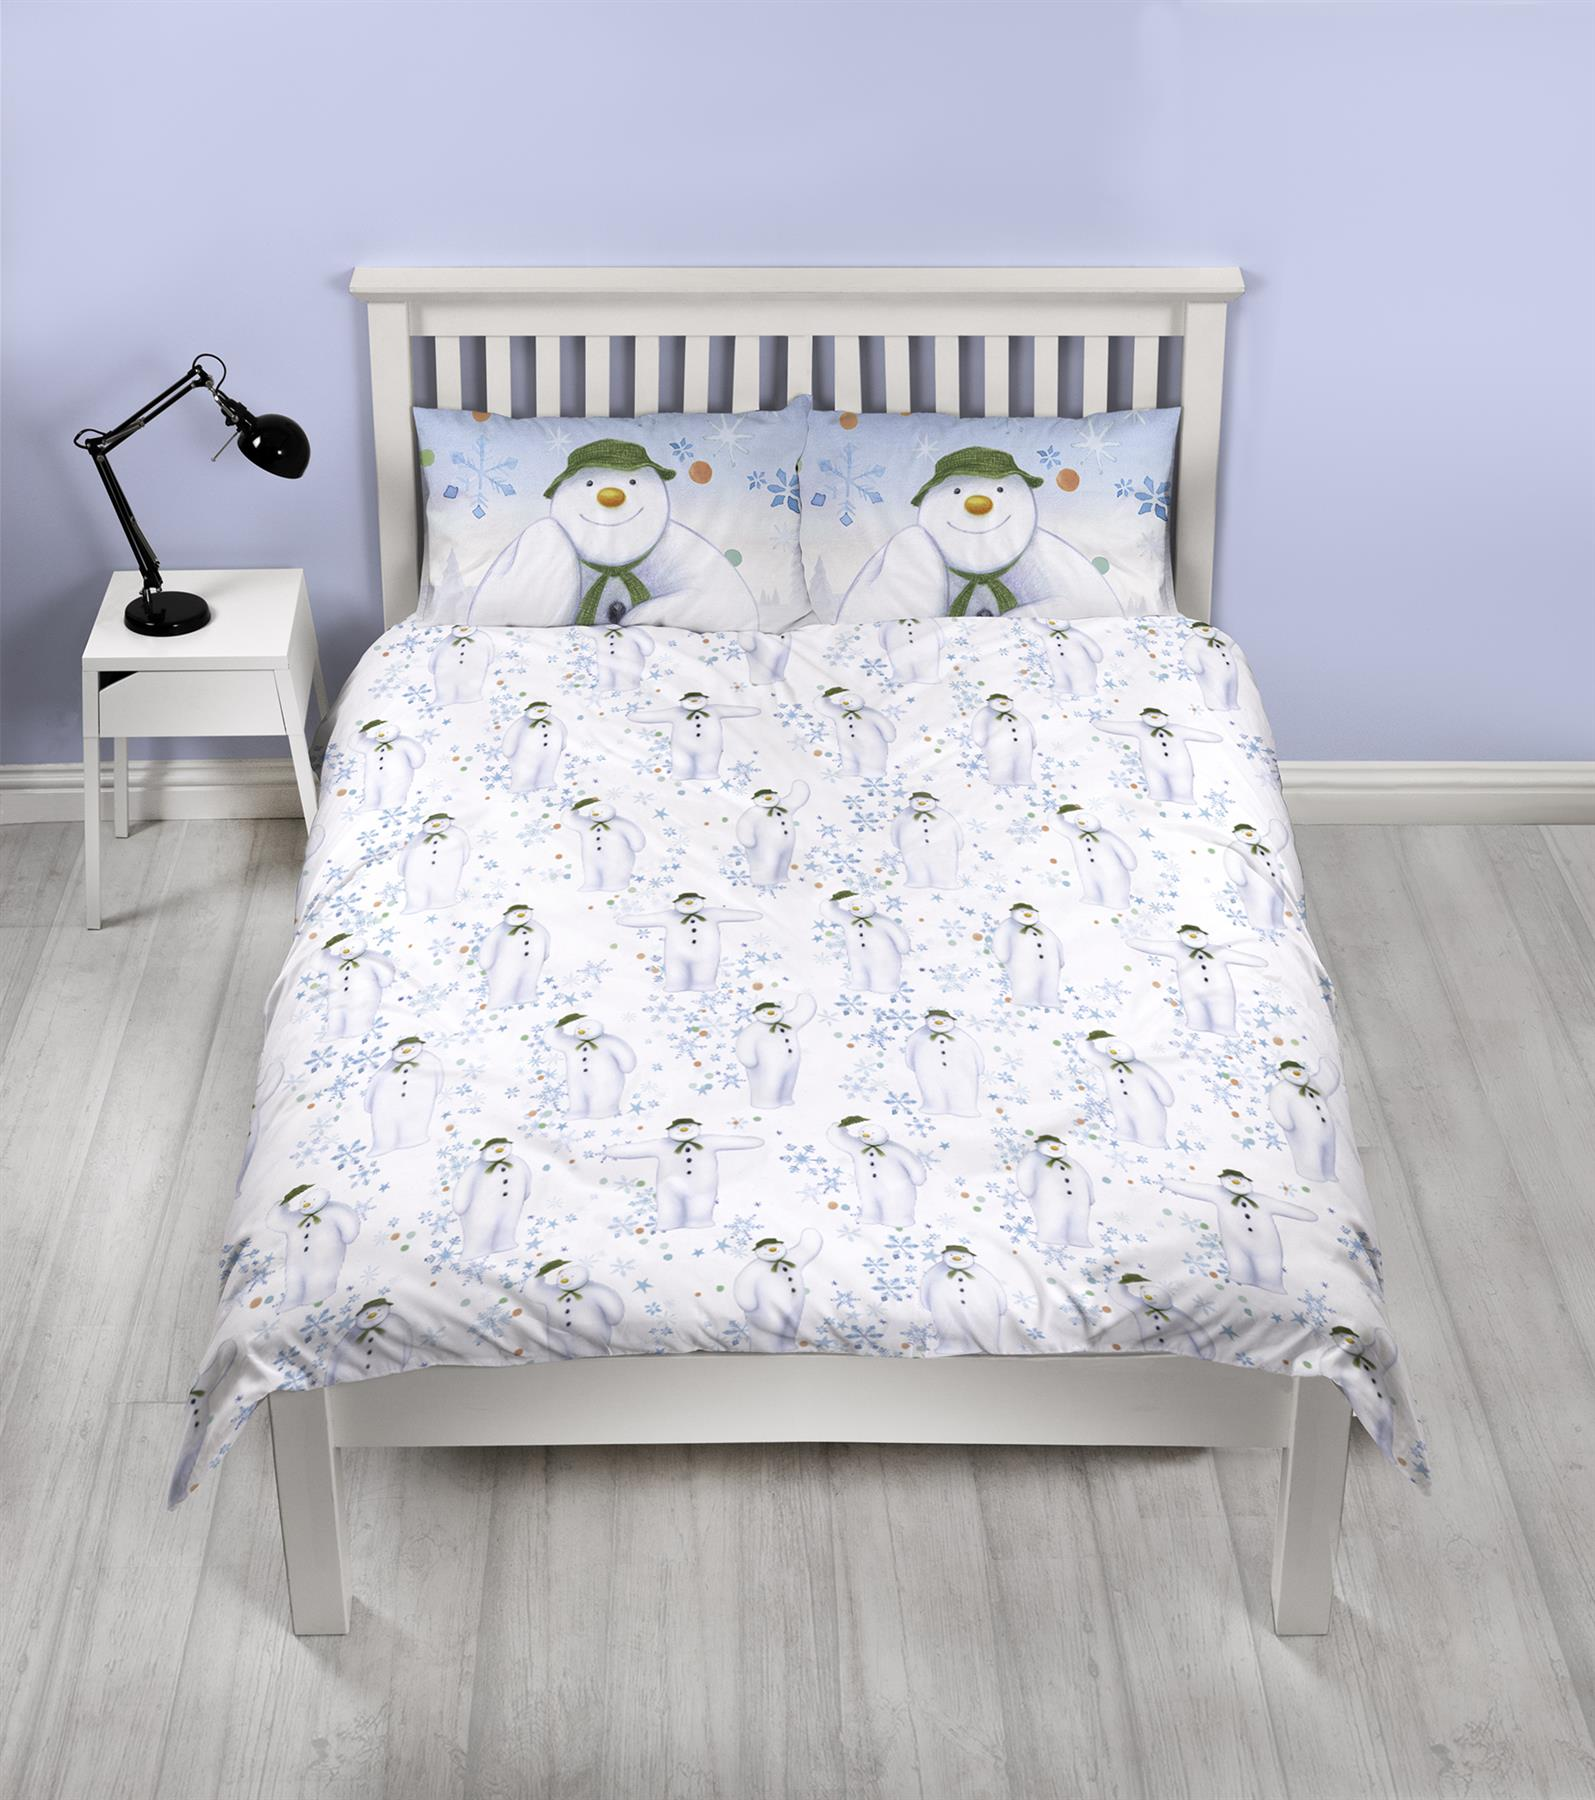 Official-The-Snowman-Duvet-Cover-Single-Double-Reversible-Bedding-Fleece-Blanket thumbnail 12